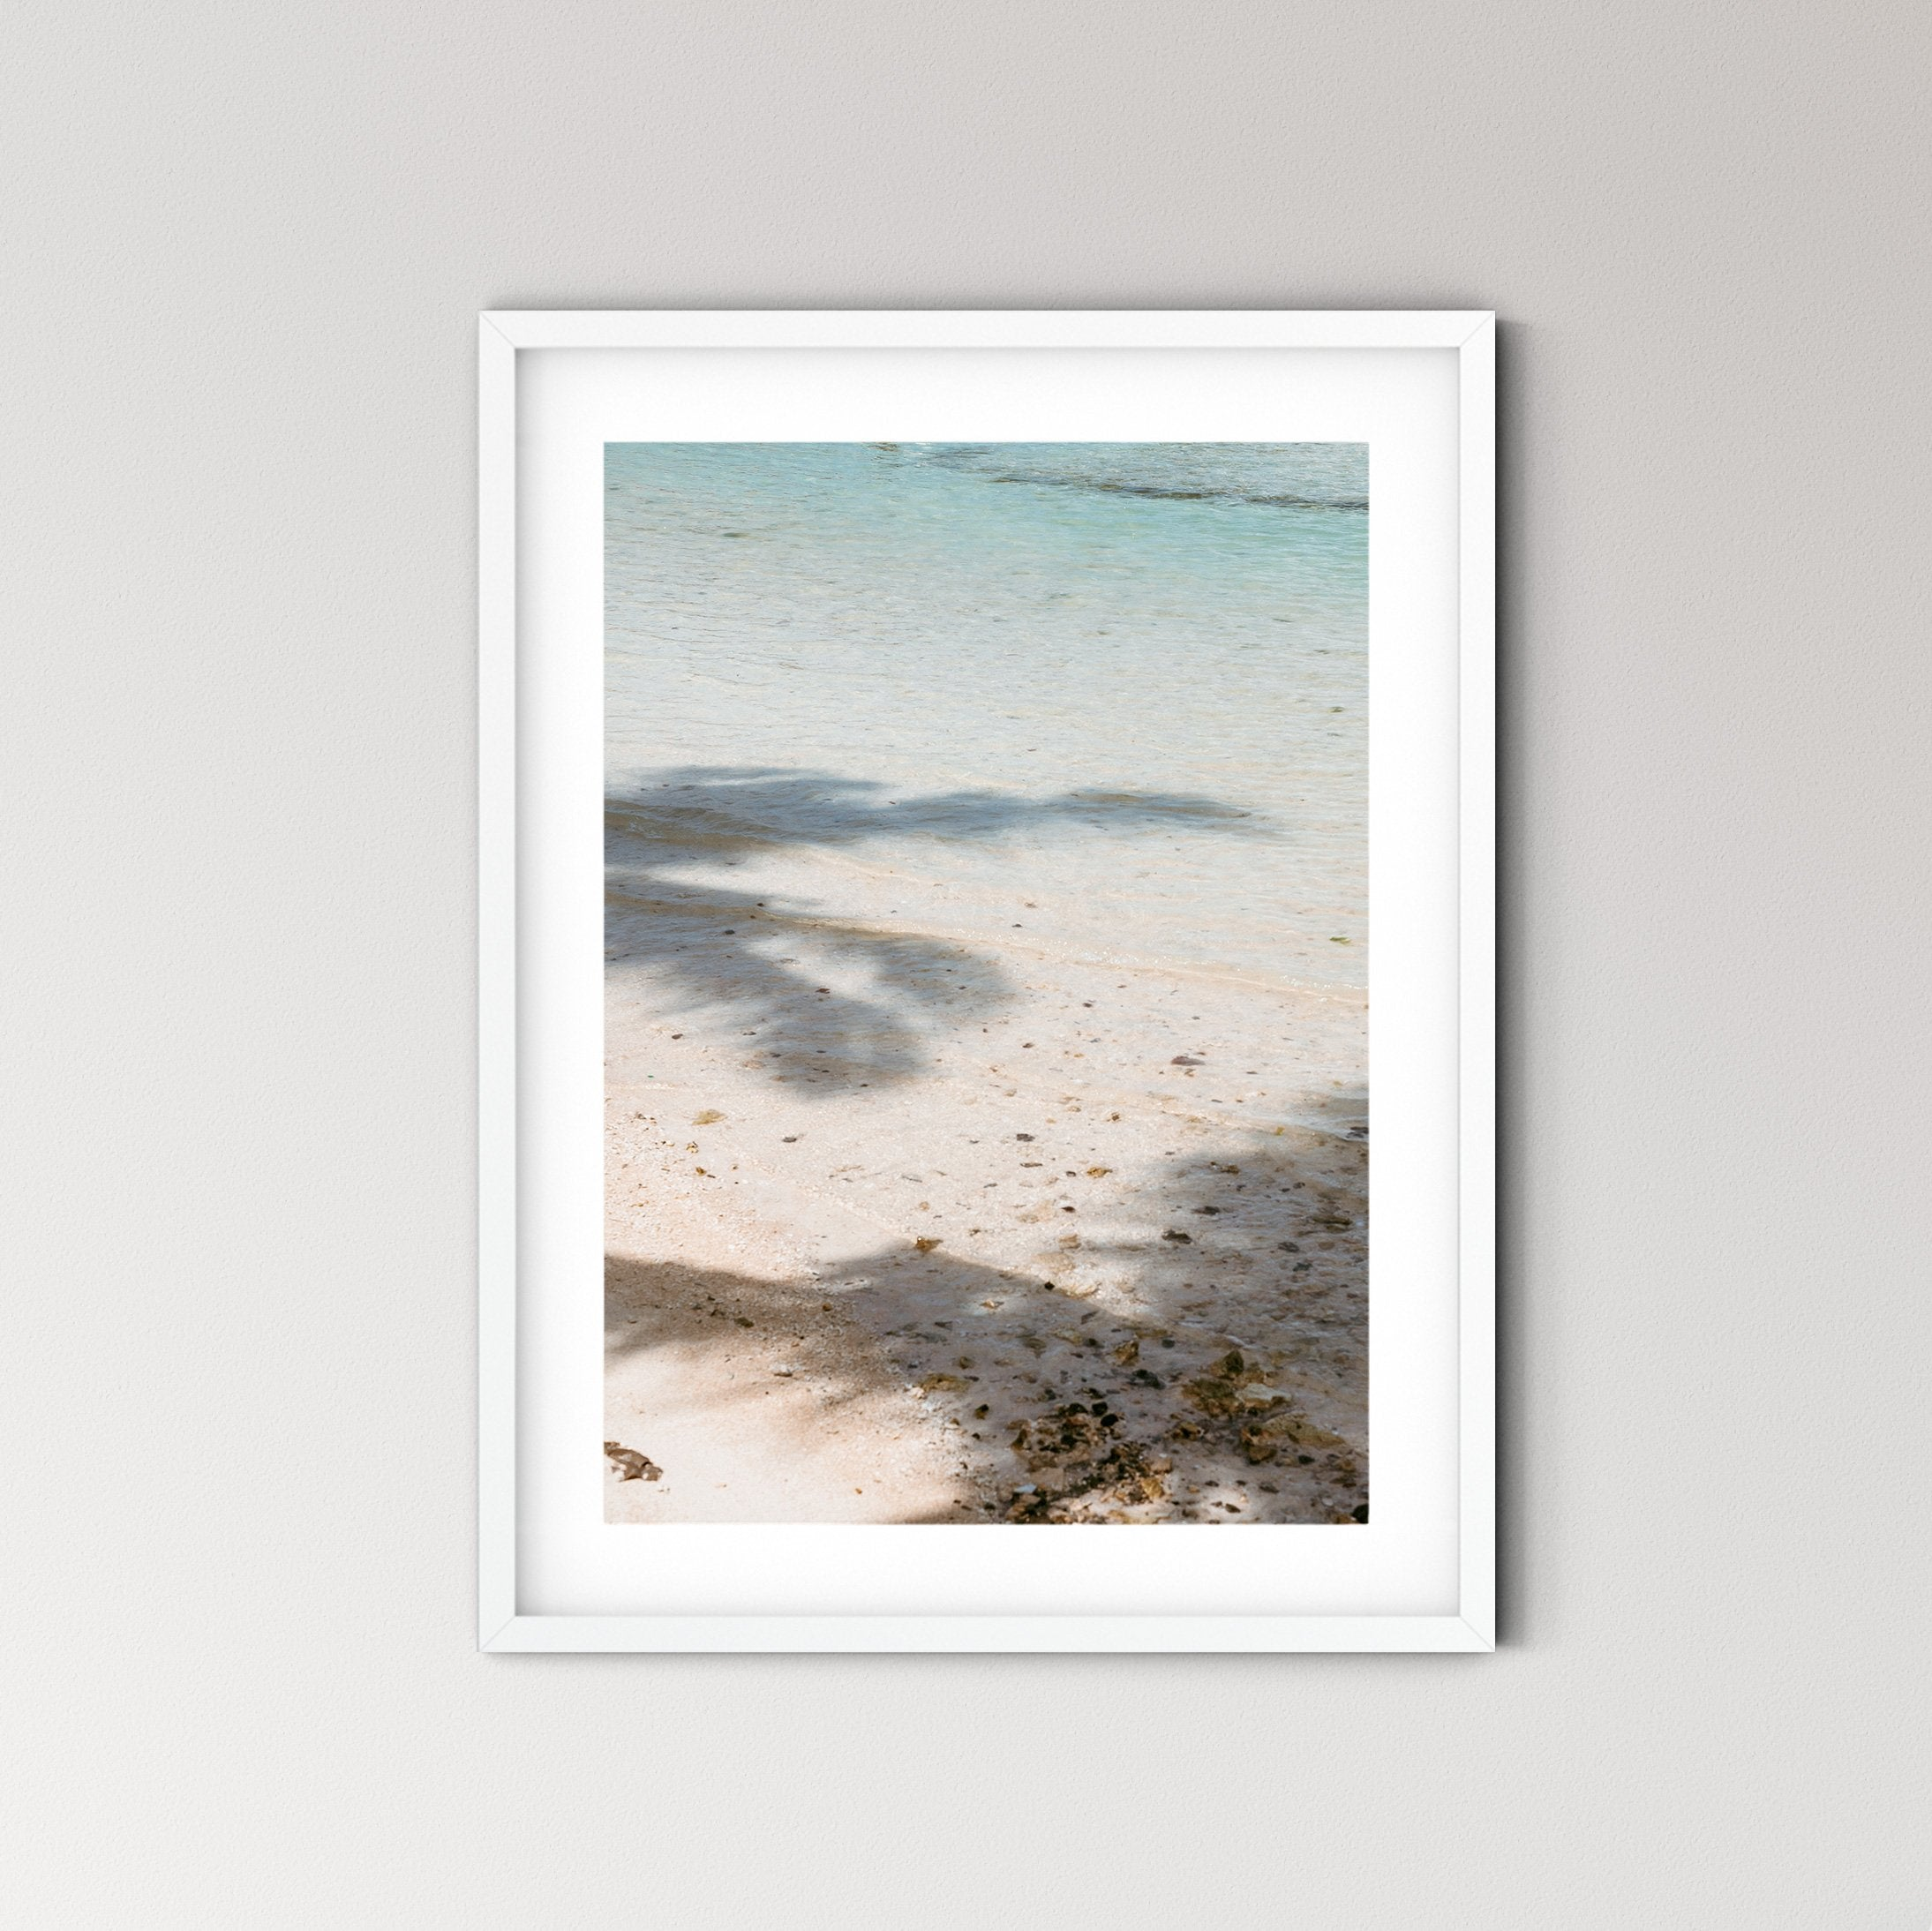 Ceningan Bali Photo Print - Feathers and Stone